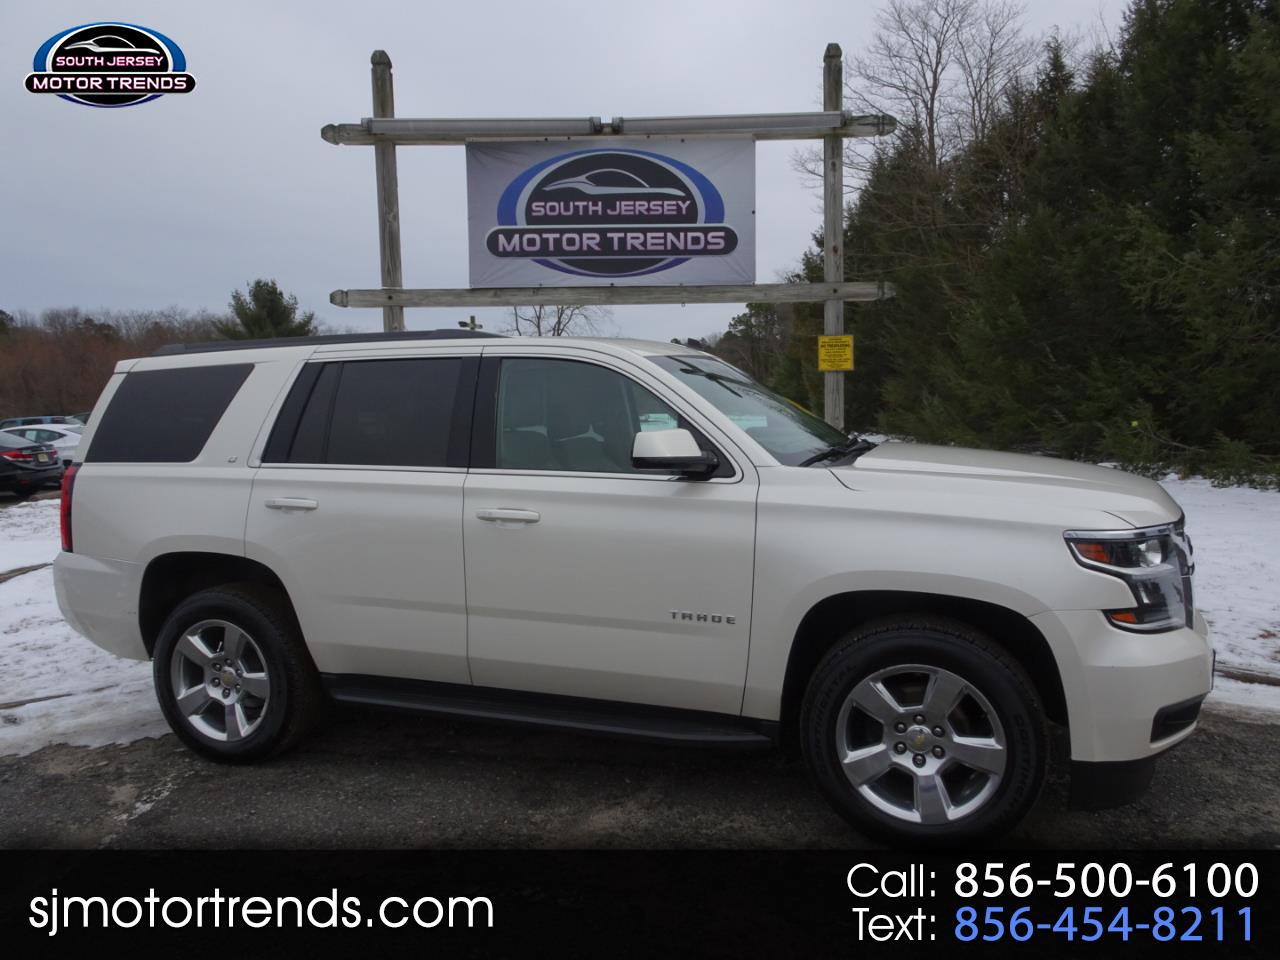 Used Cars For Sale Vineland Nj 08360 South Jersey Motor Trends